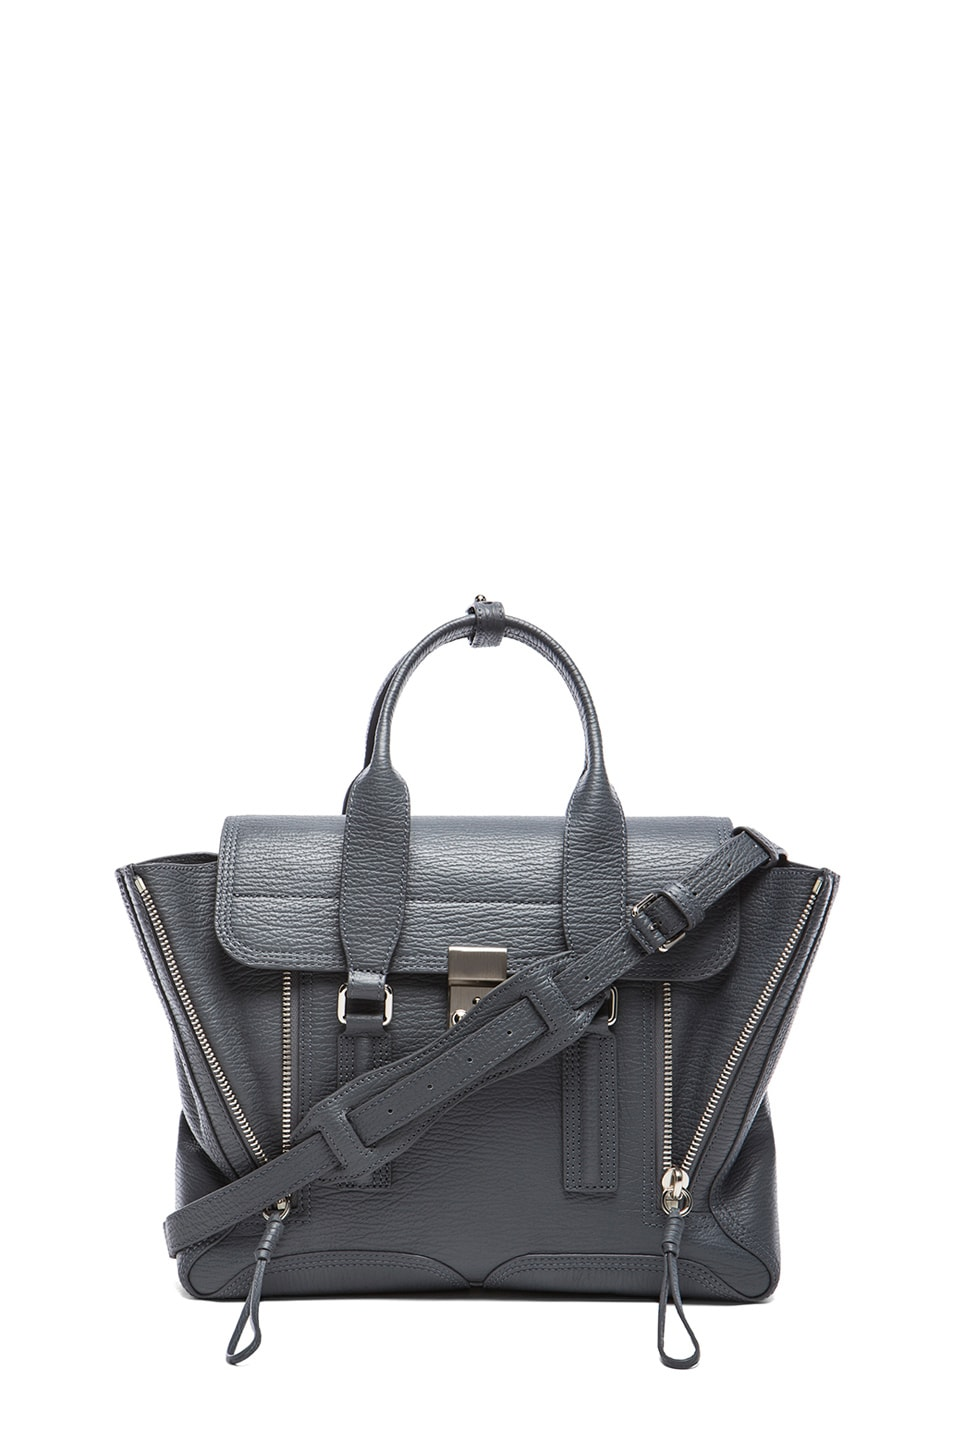 Image 1 of 3.1 phillip lim Medium Pashli Trapeze in Storm & Nickel